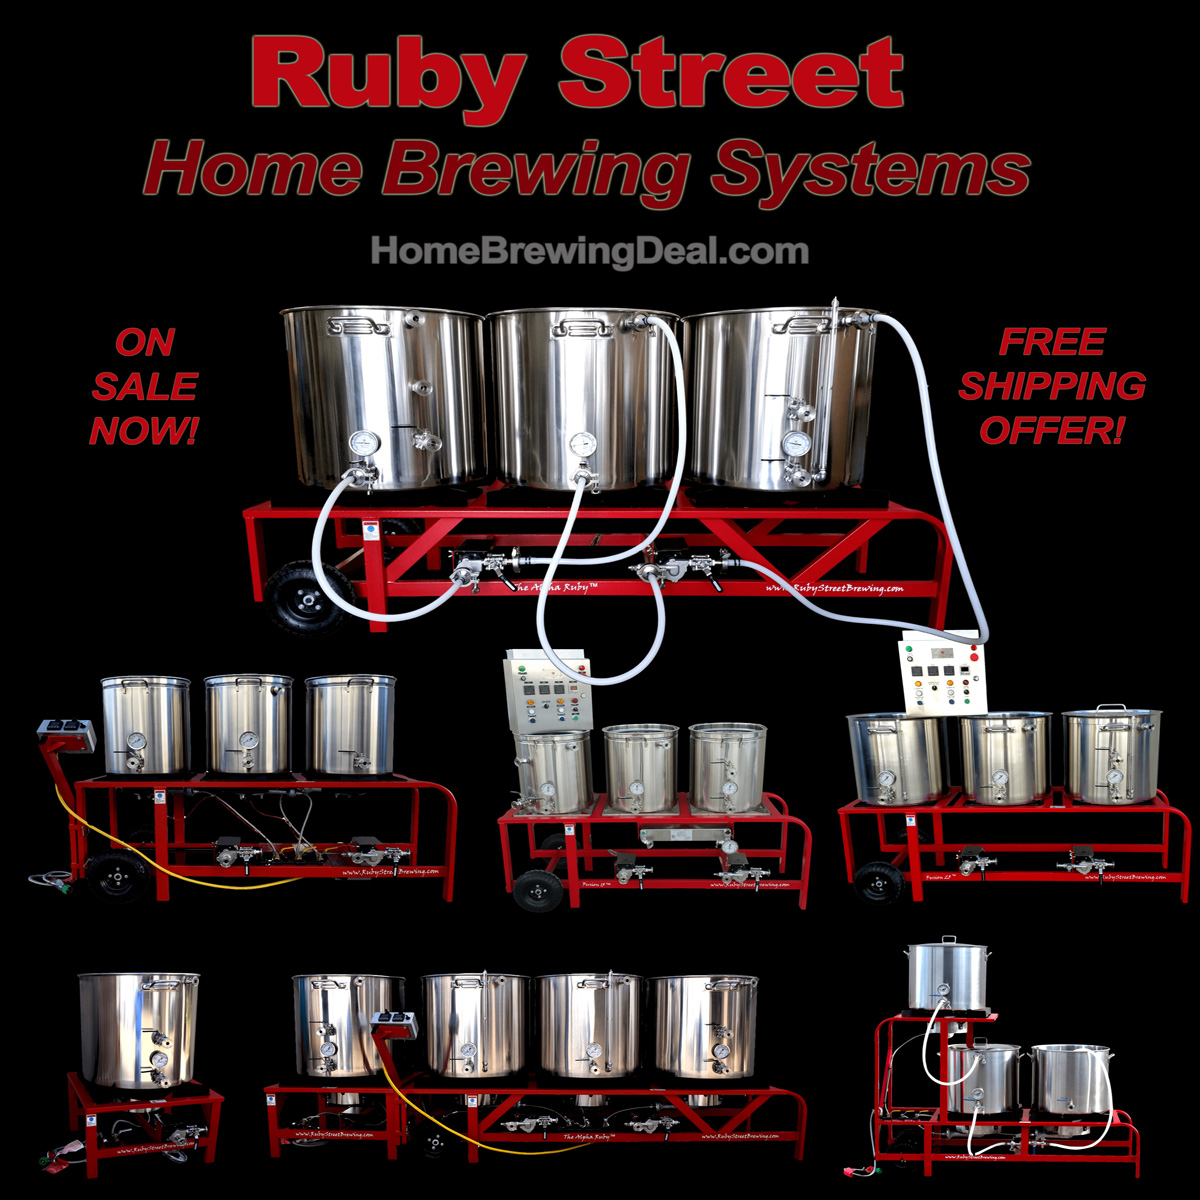 Save up to $250 and get Free Shipping on Ruby Street Homebrewing Systems Sale